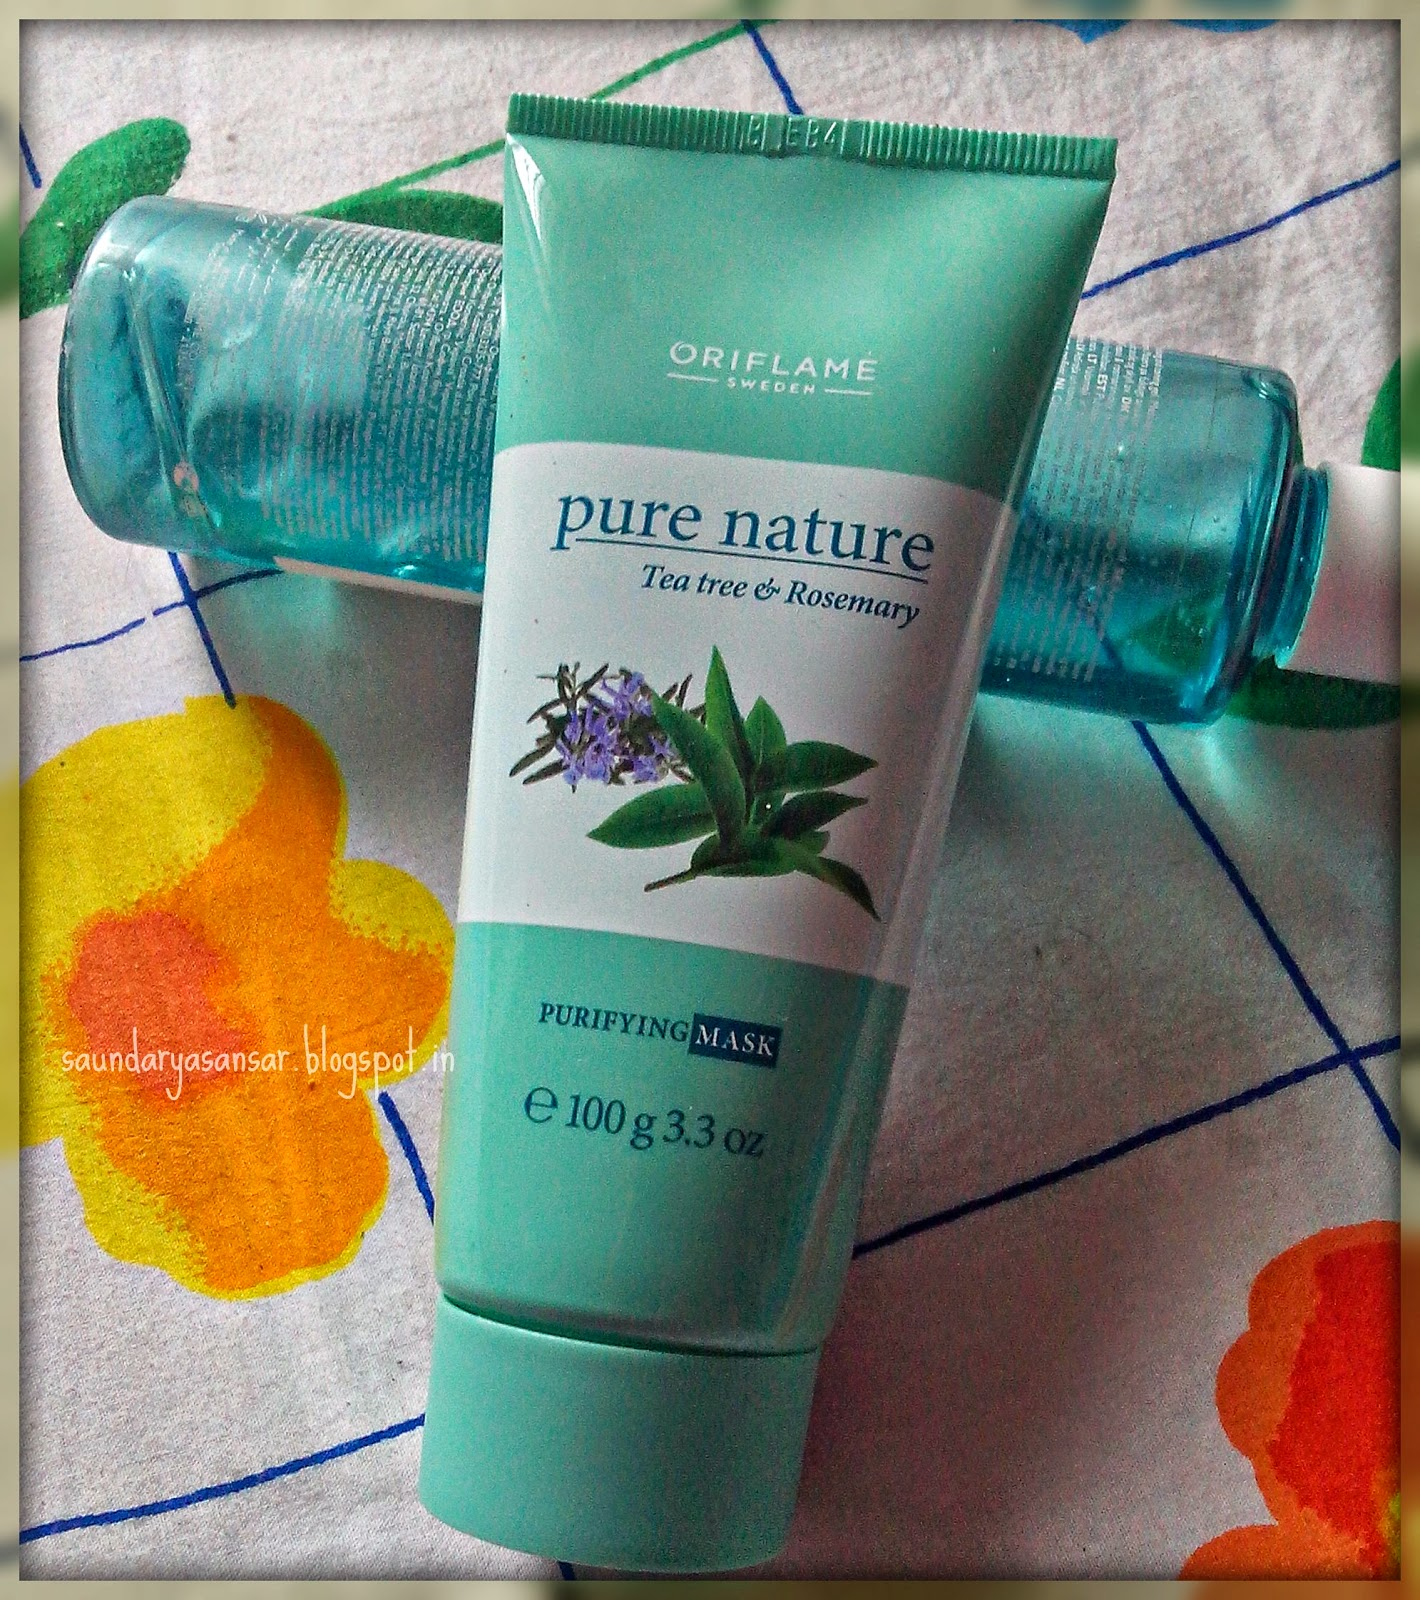 ORIFLAME-PURE-NATURE-Tea-Tree-and-Rosemary-Purifying-Mask-Review